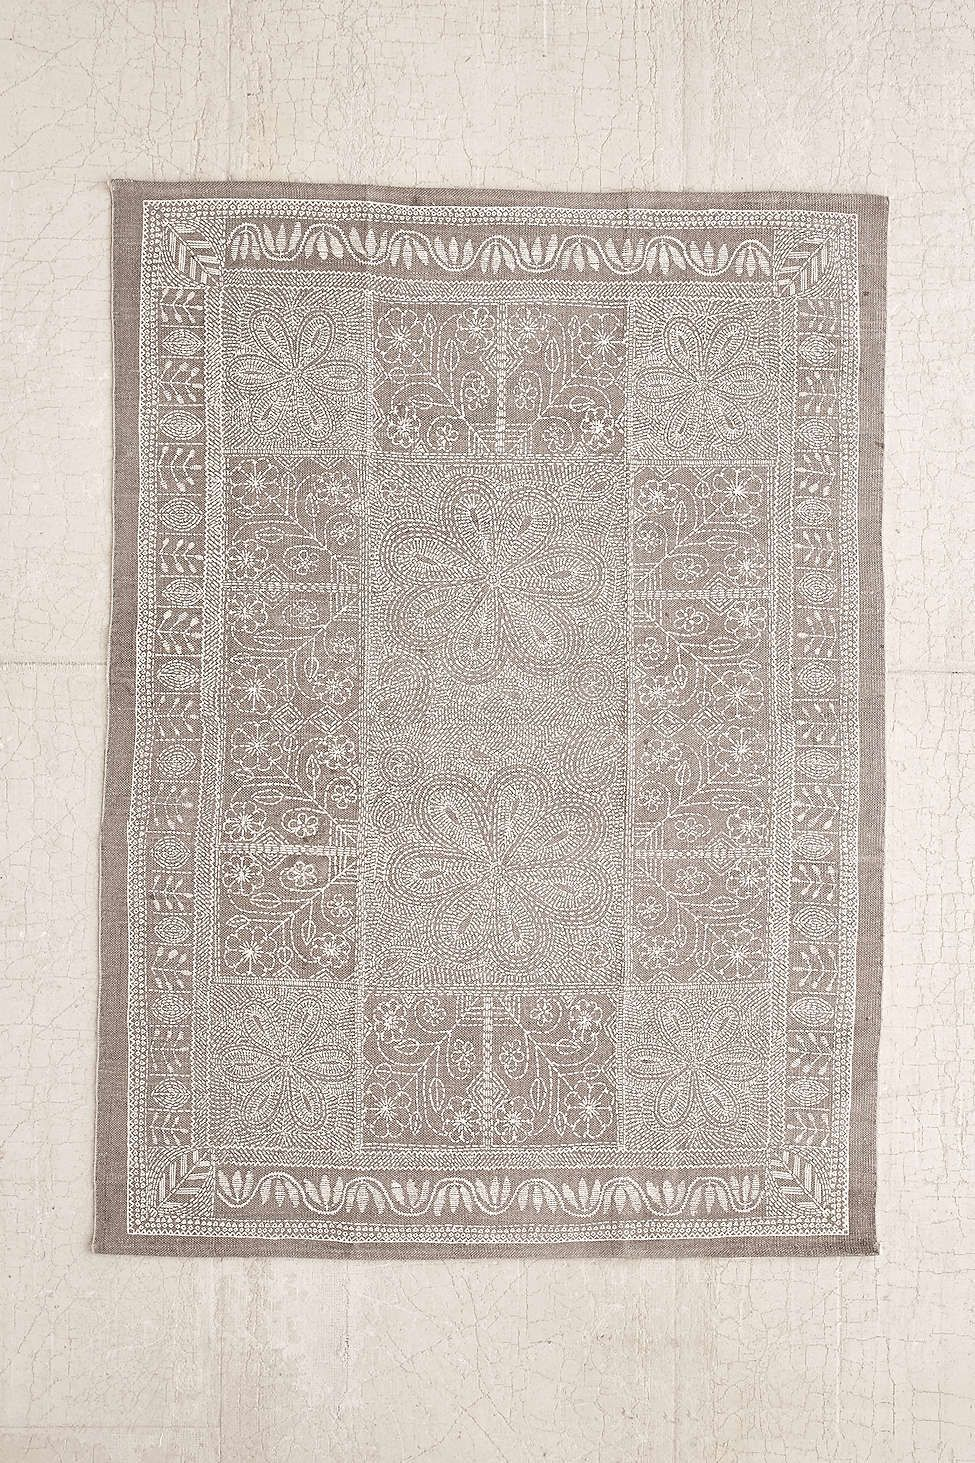 Hallway rug ideas  Plum u Bow Margarita Stitch Mark Printed Rug  Hallway ideas  Pinterest